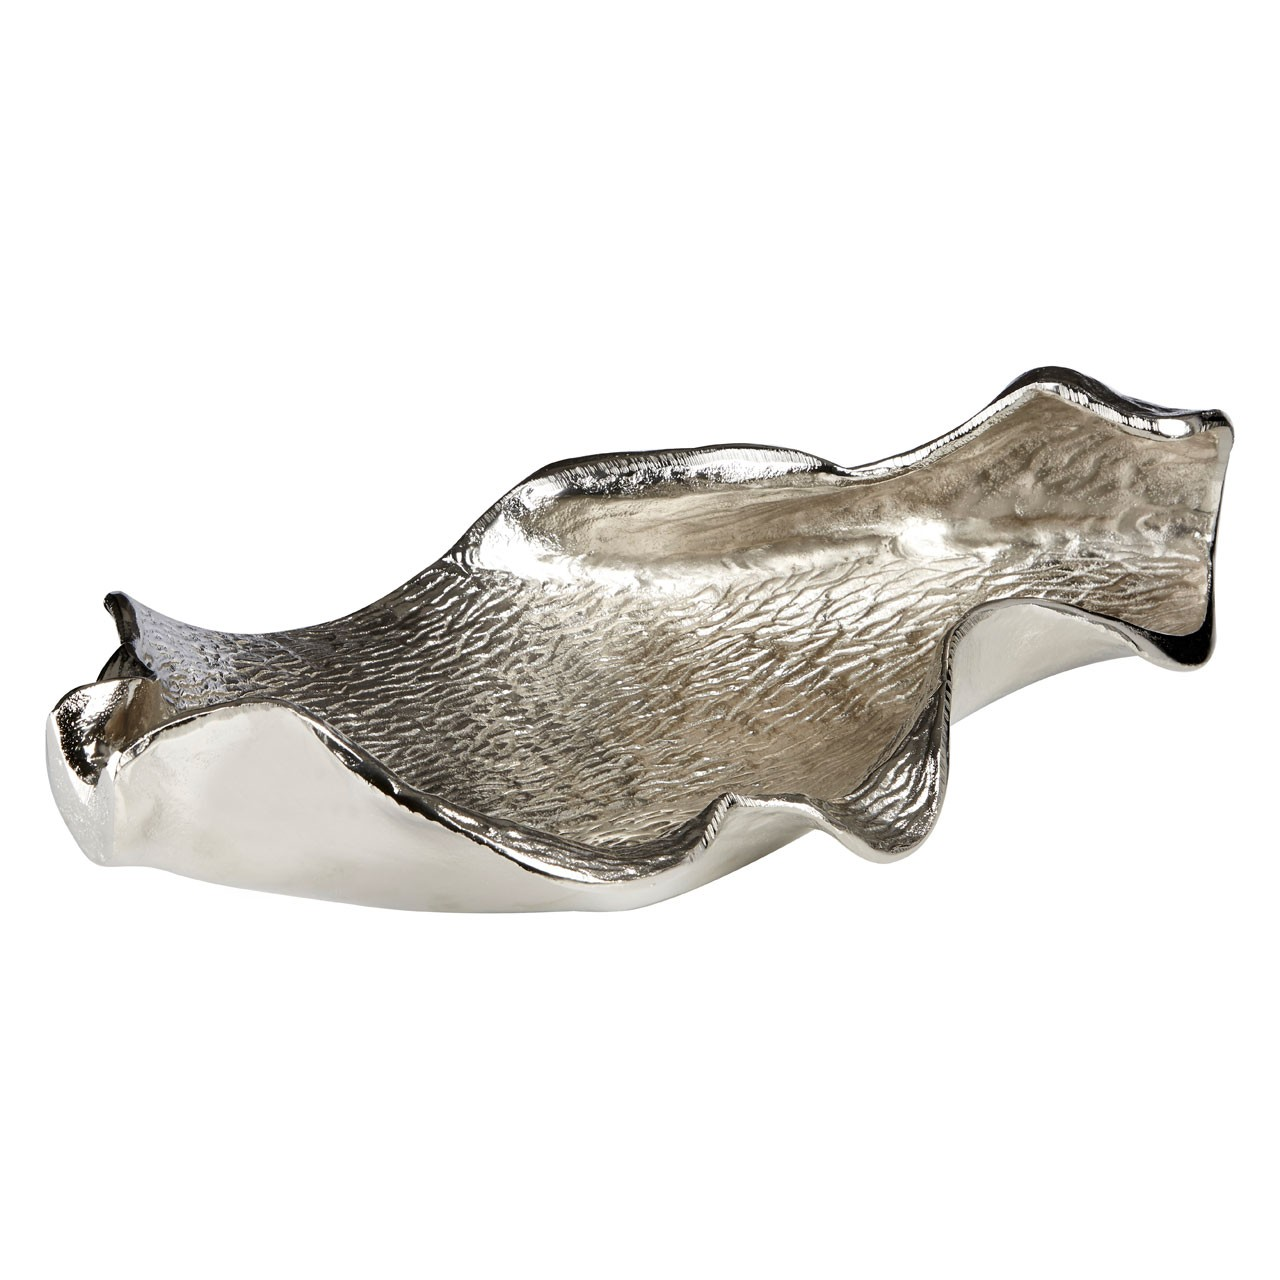 Prime Furnishing Hampstead Large Leaf Sculpture - Nickel Finish